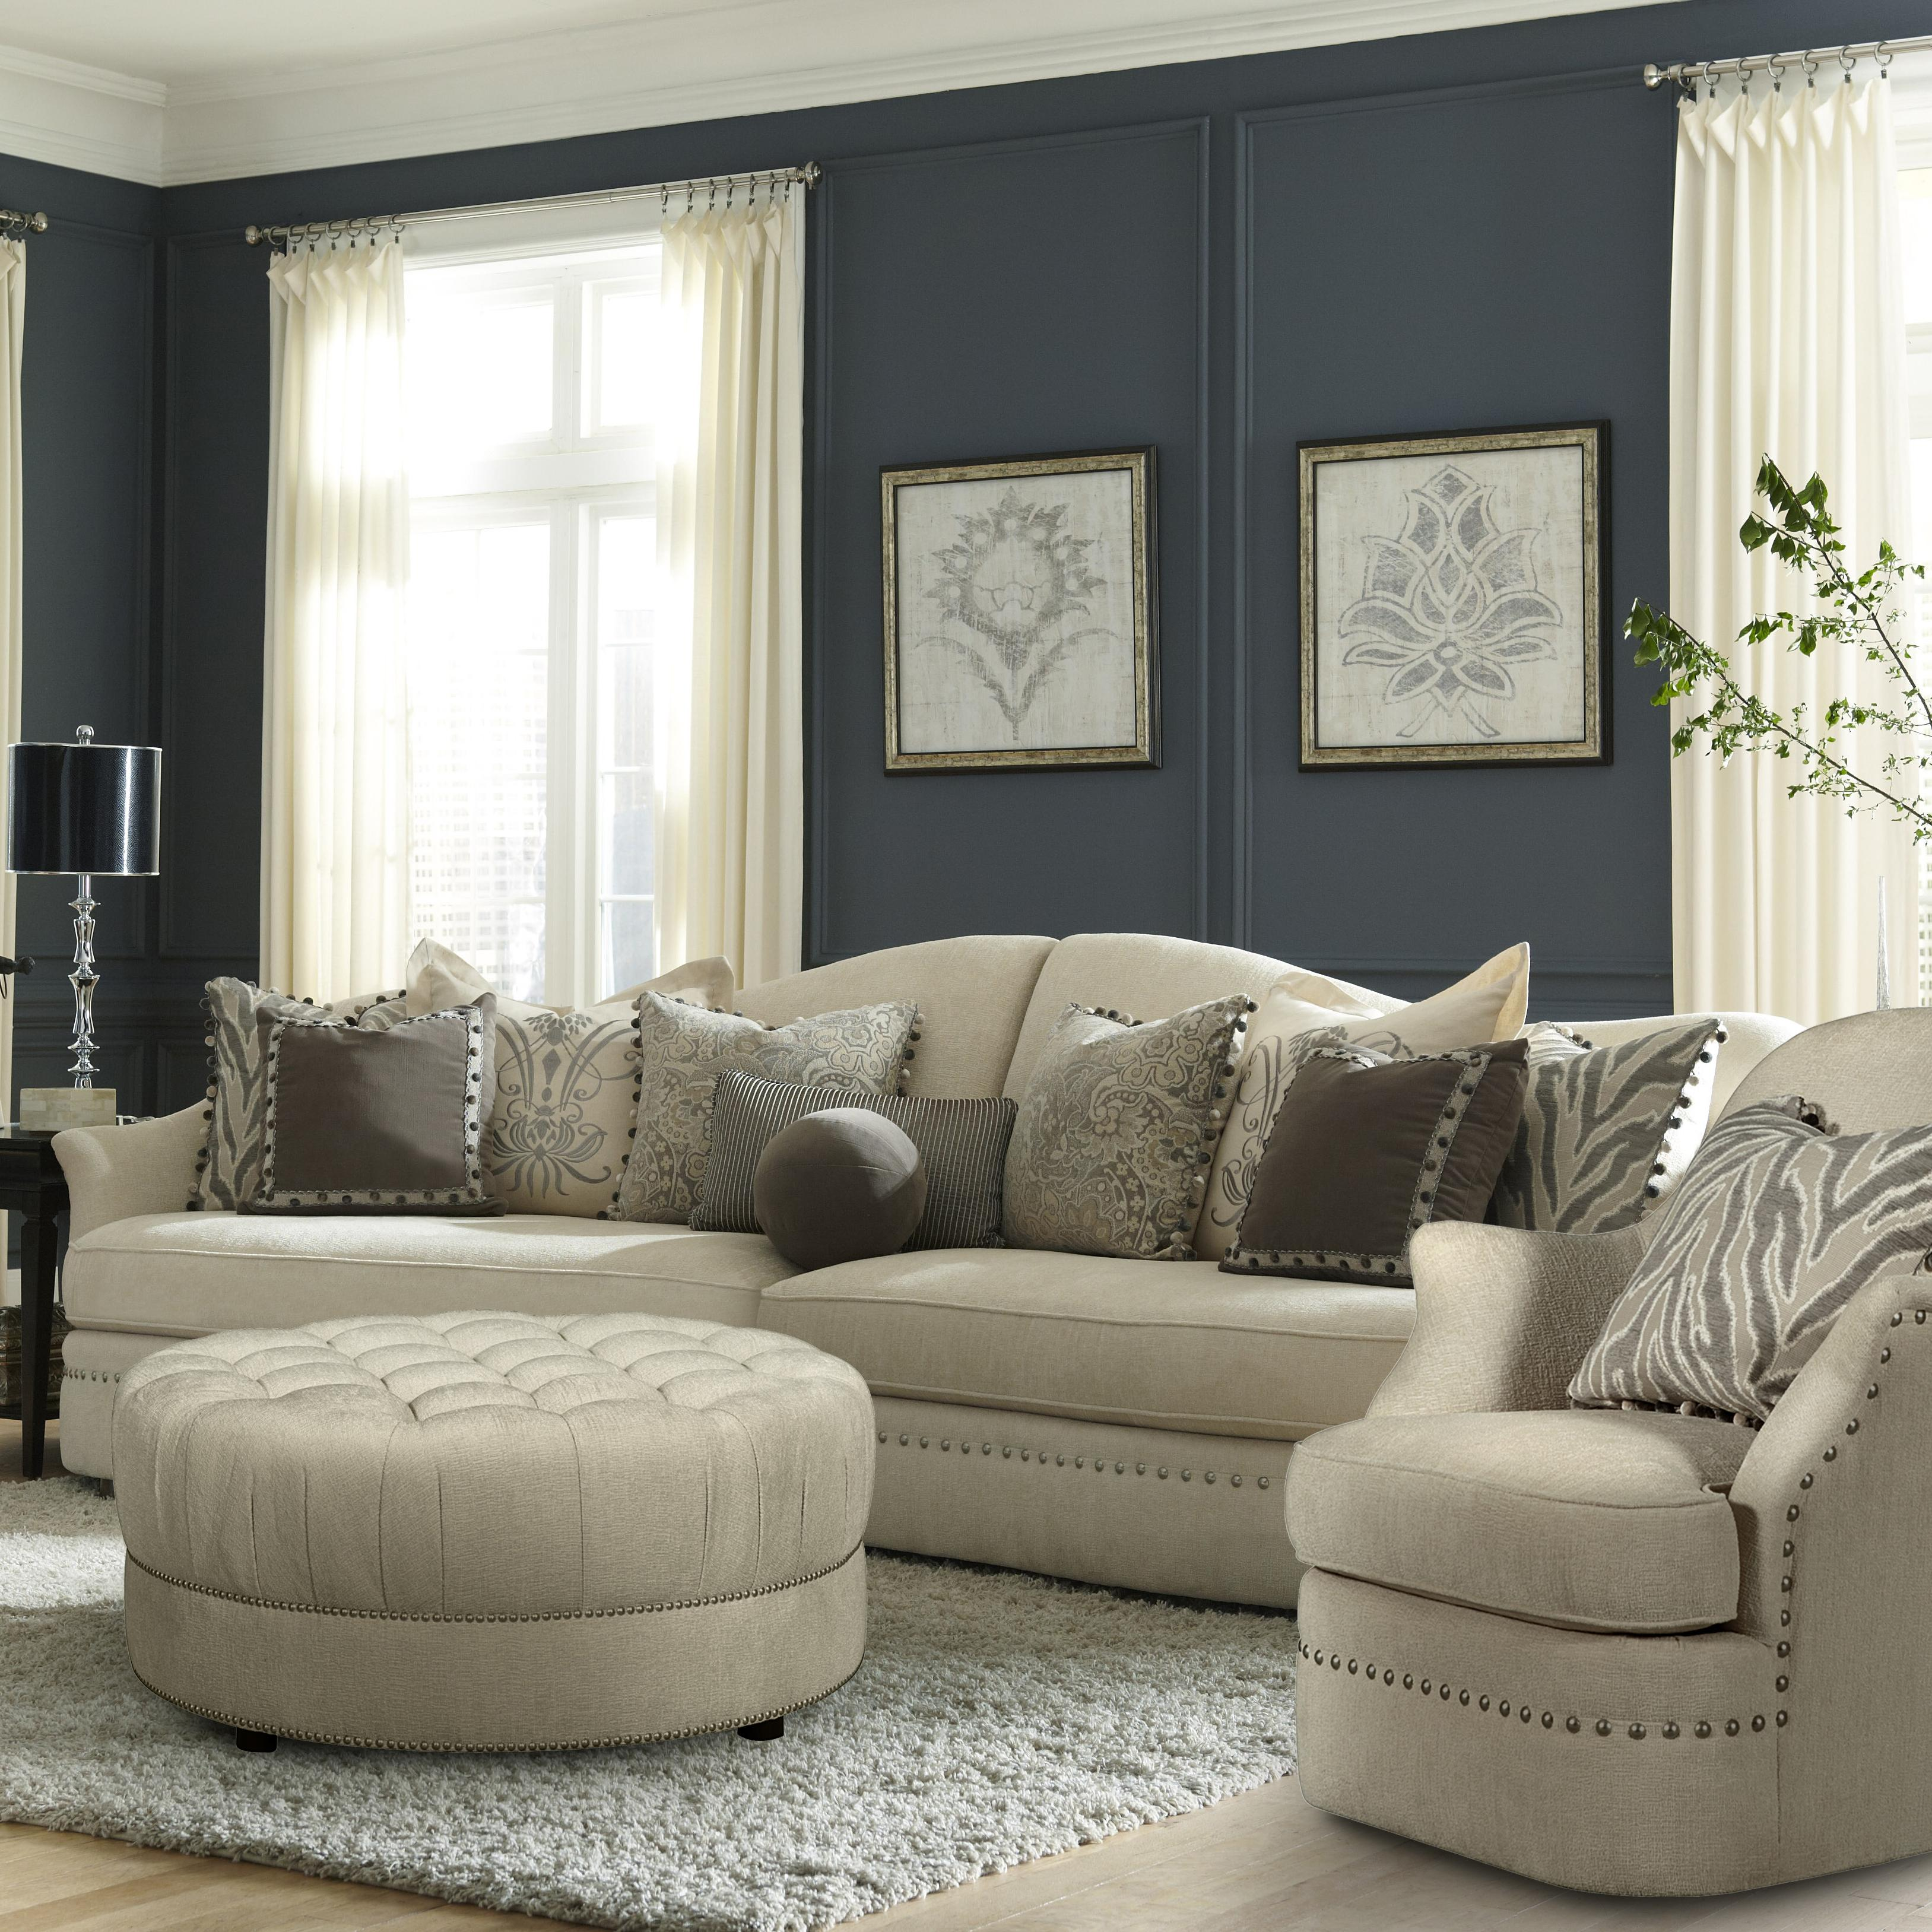 2 piece sofas 2 piece sectional sofa with chaise living for Chaise interiors inc